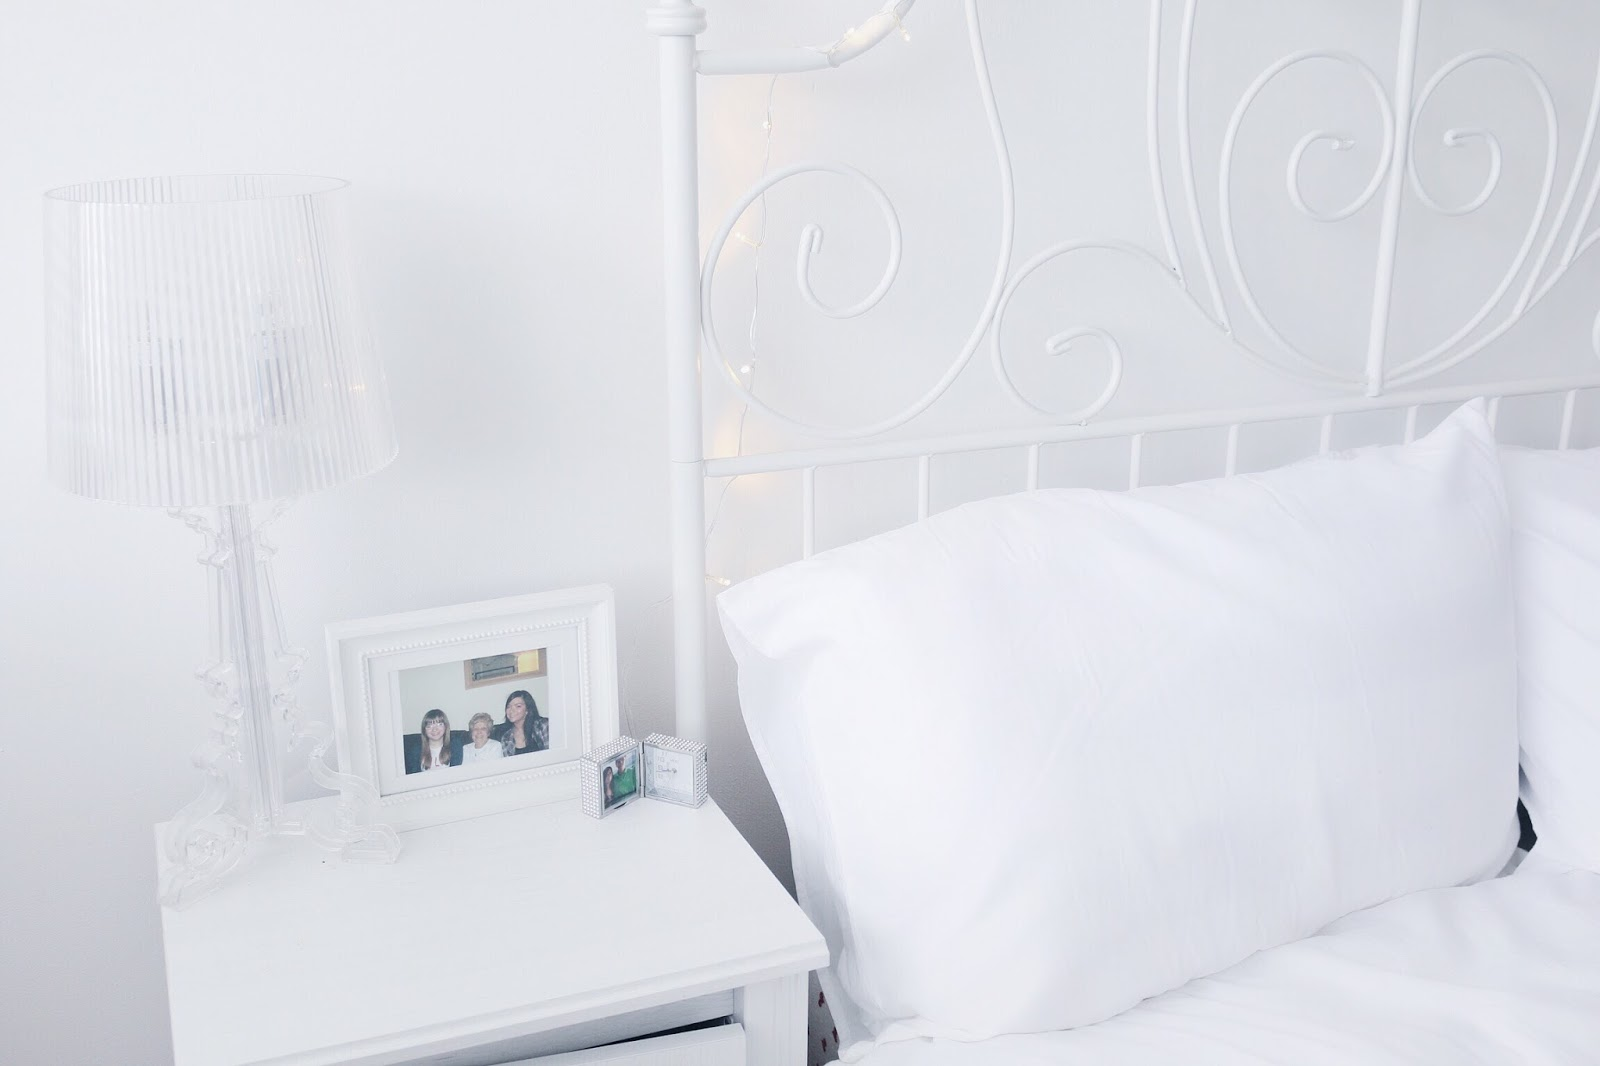 Home Decor, Lifestyle, Interior Design, Room Makeover, White Bedroom, Ikea, Prints, Silver, Metallic, H&M Home, Homeware, Bedroom Make over, Before and after, bedroom make over on budget, decorating, decorating on budget, the white company, ikea, marble, etsy, etsy uk